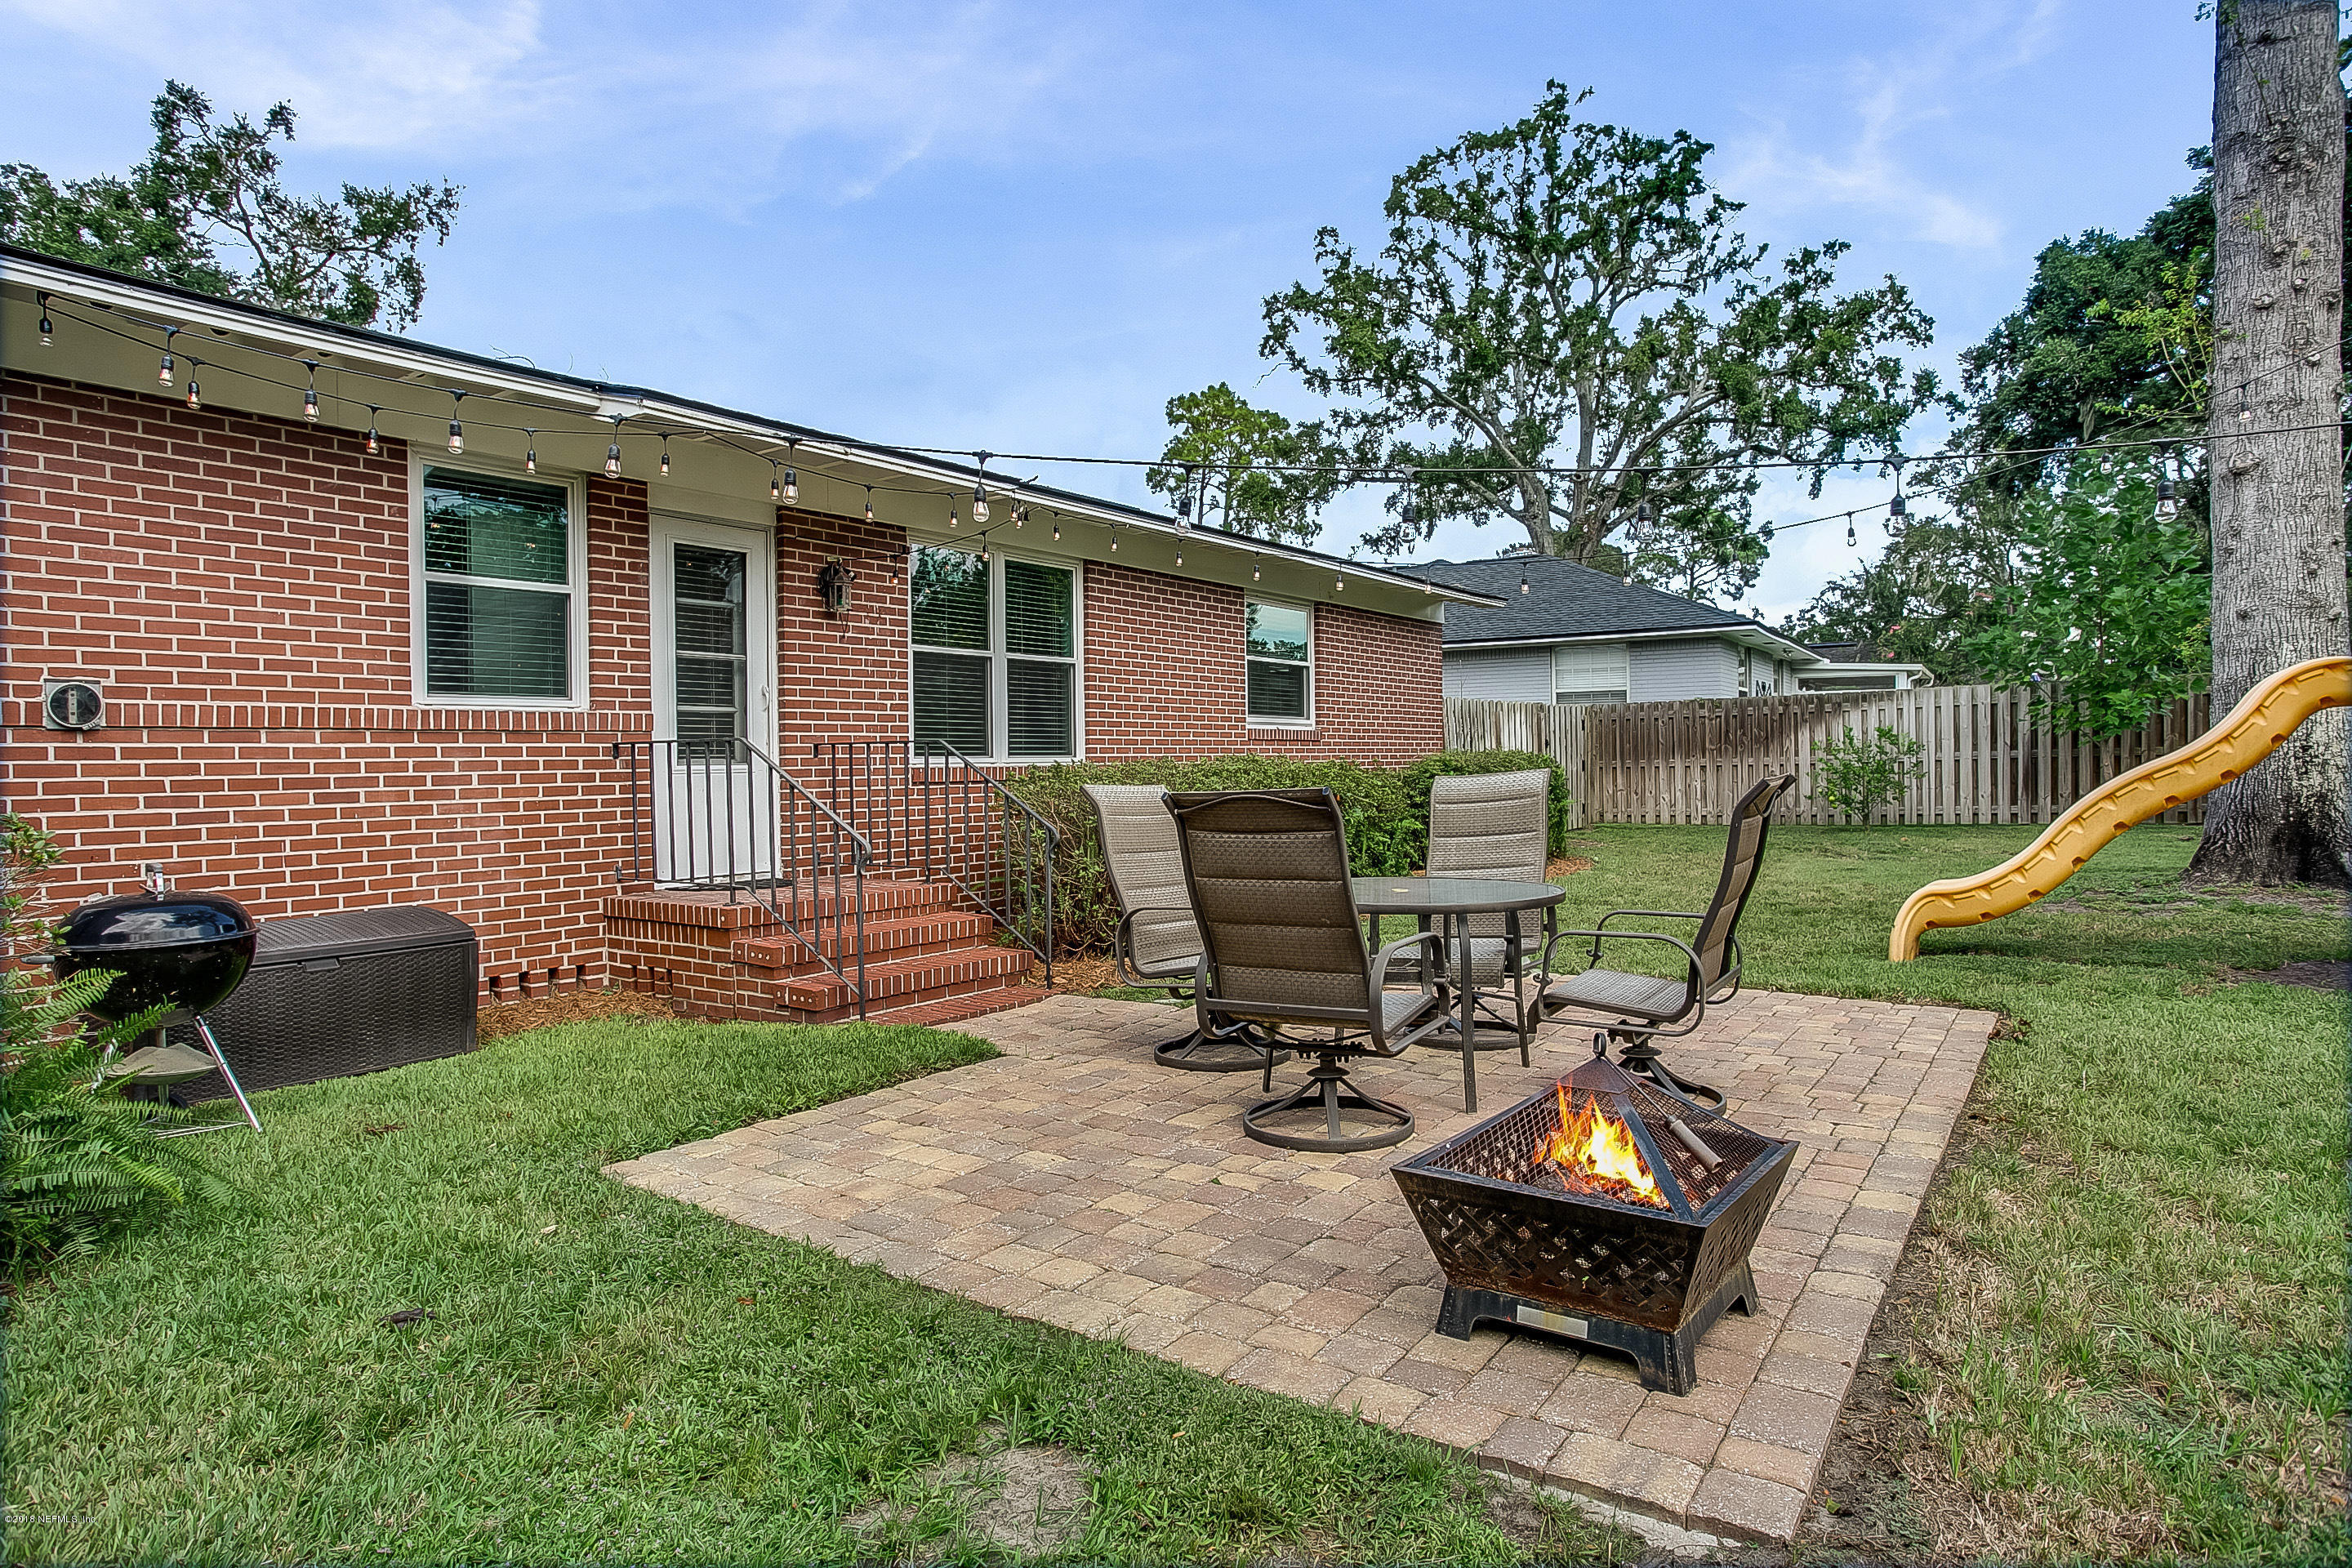 4405 WORTH, JACKSONVILLE, FLORIDA 32207, 3 Bedrooms Bedrooms, ,3 BathroomsBathrooms,Residential - single family,For sale,WORTH,959353